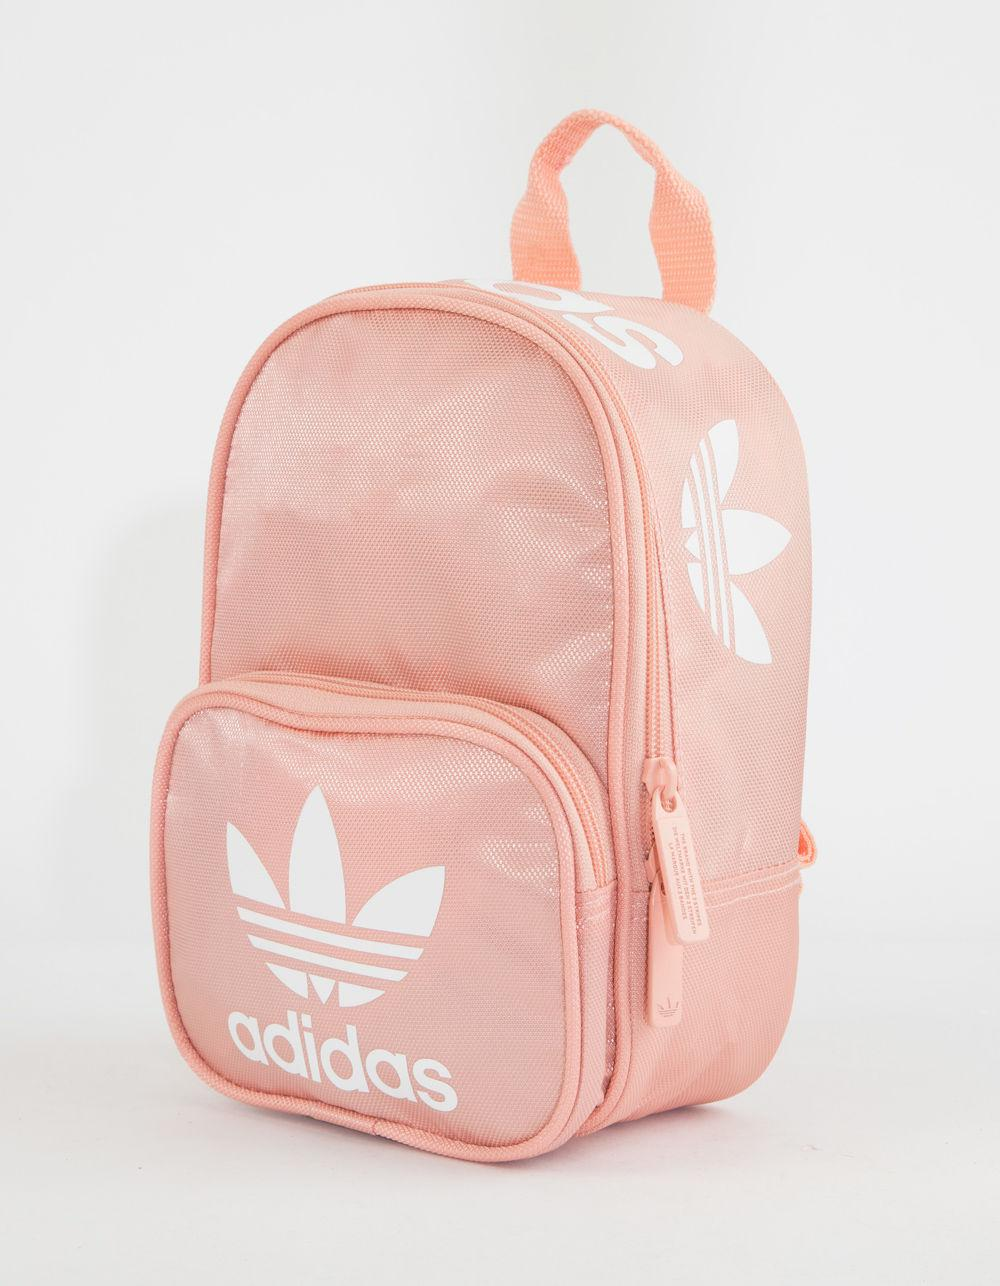 13522d9a9f0 Lyst - adidas Originals Santiago Pink Mini Backpack in Pink